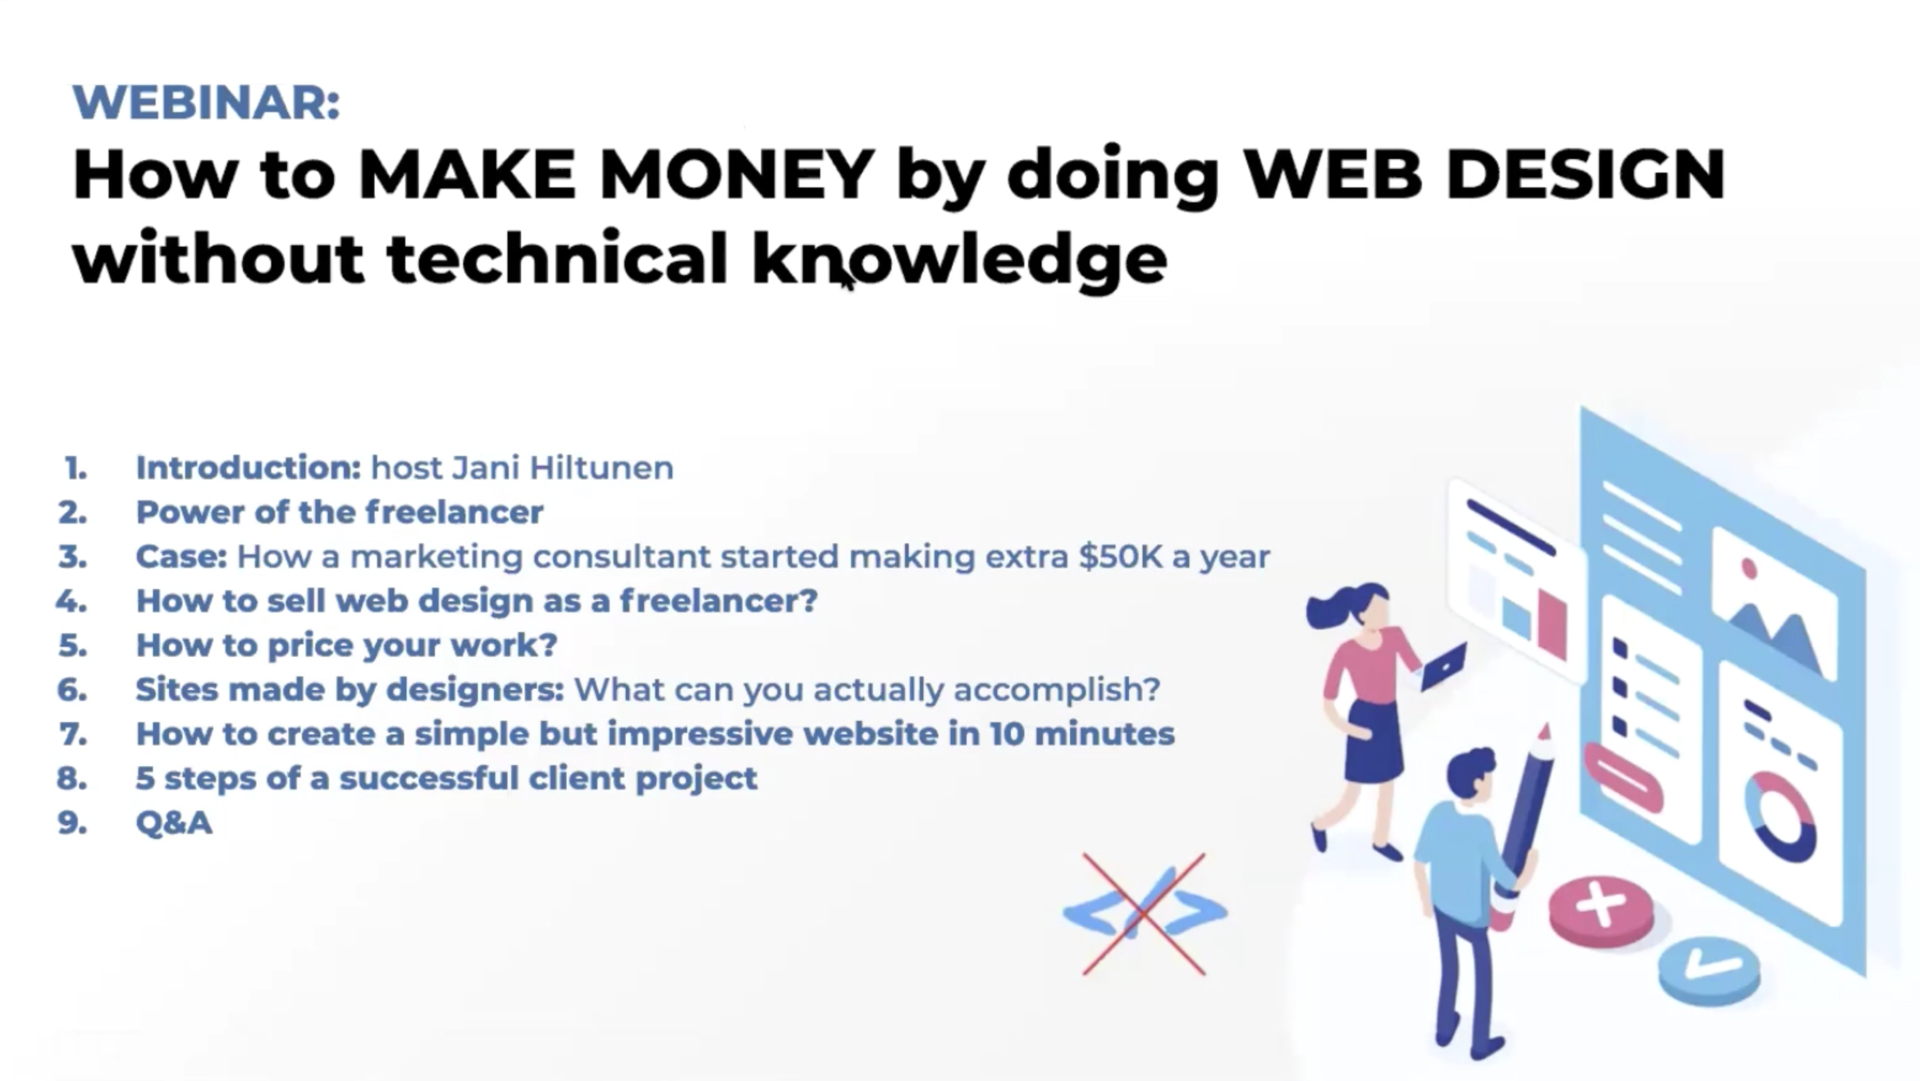 Webinar Recording How To Make Money By Doing Web Design Withoit Technical Knowledge